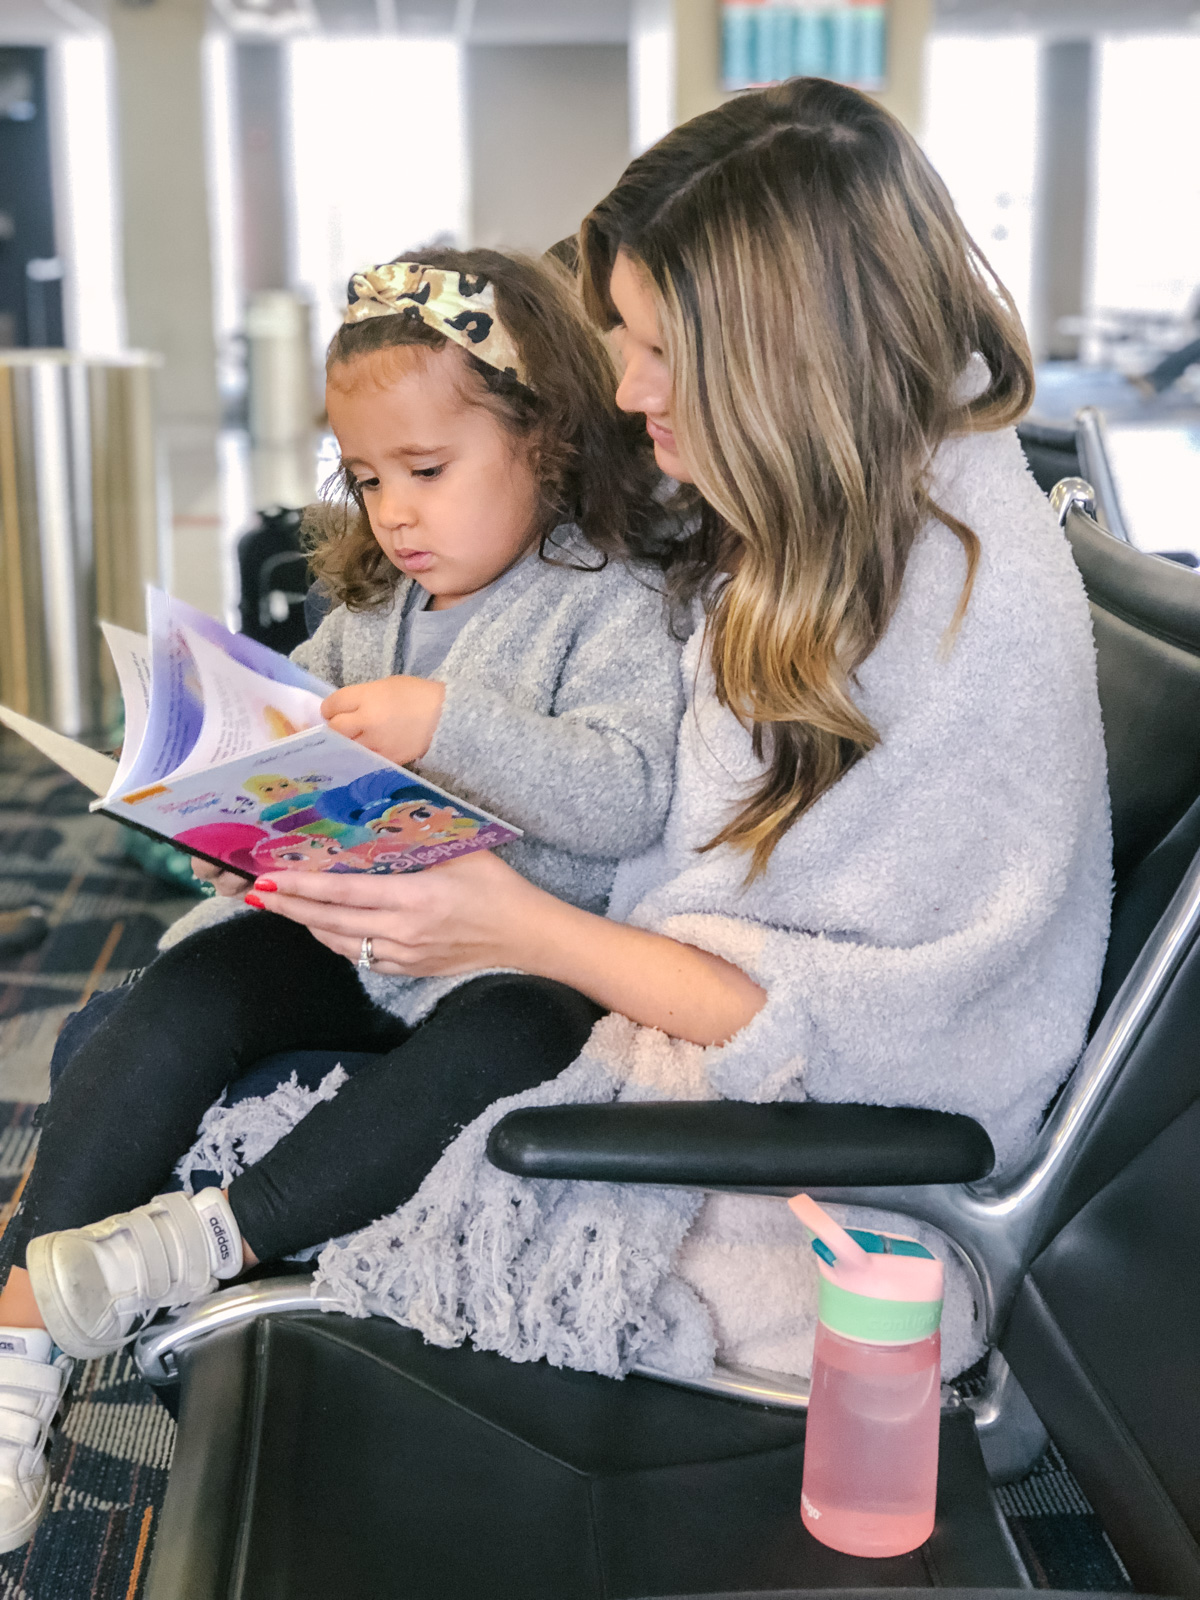 tips for flying with kids: After several years of traveling with my daughter, I'm sharing my top tips for flying solo with kids! You'll be prepped for whatever comes your way! | bylaurenm.com